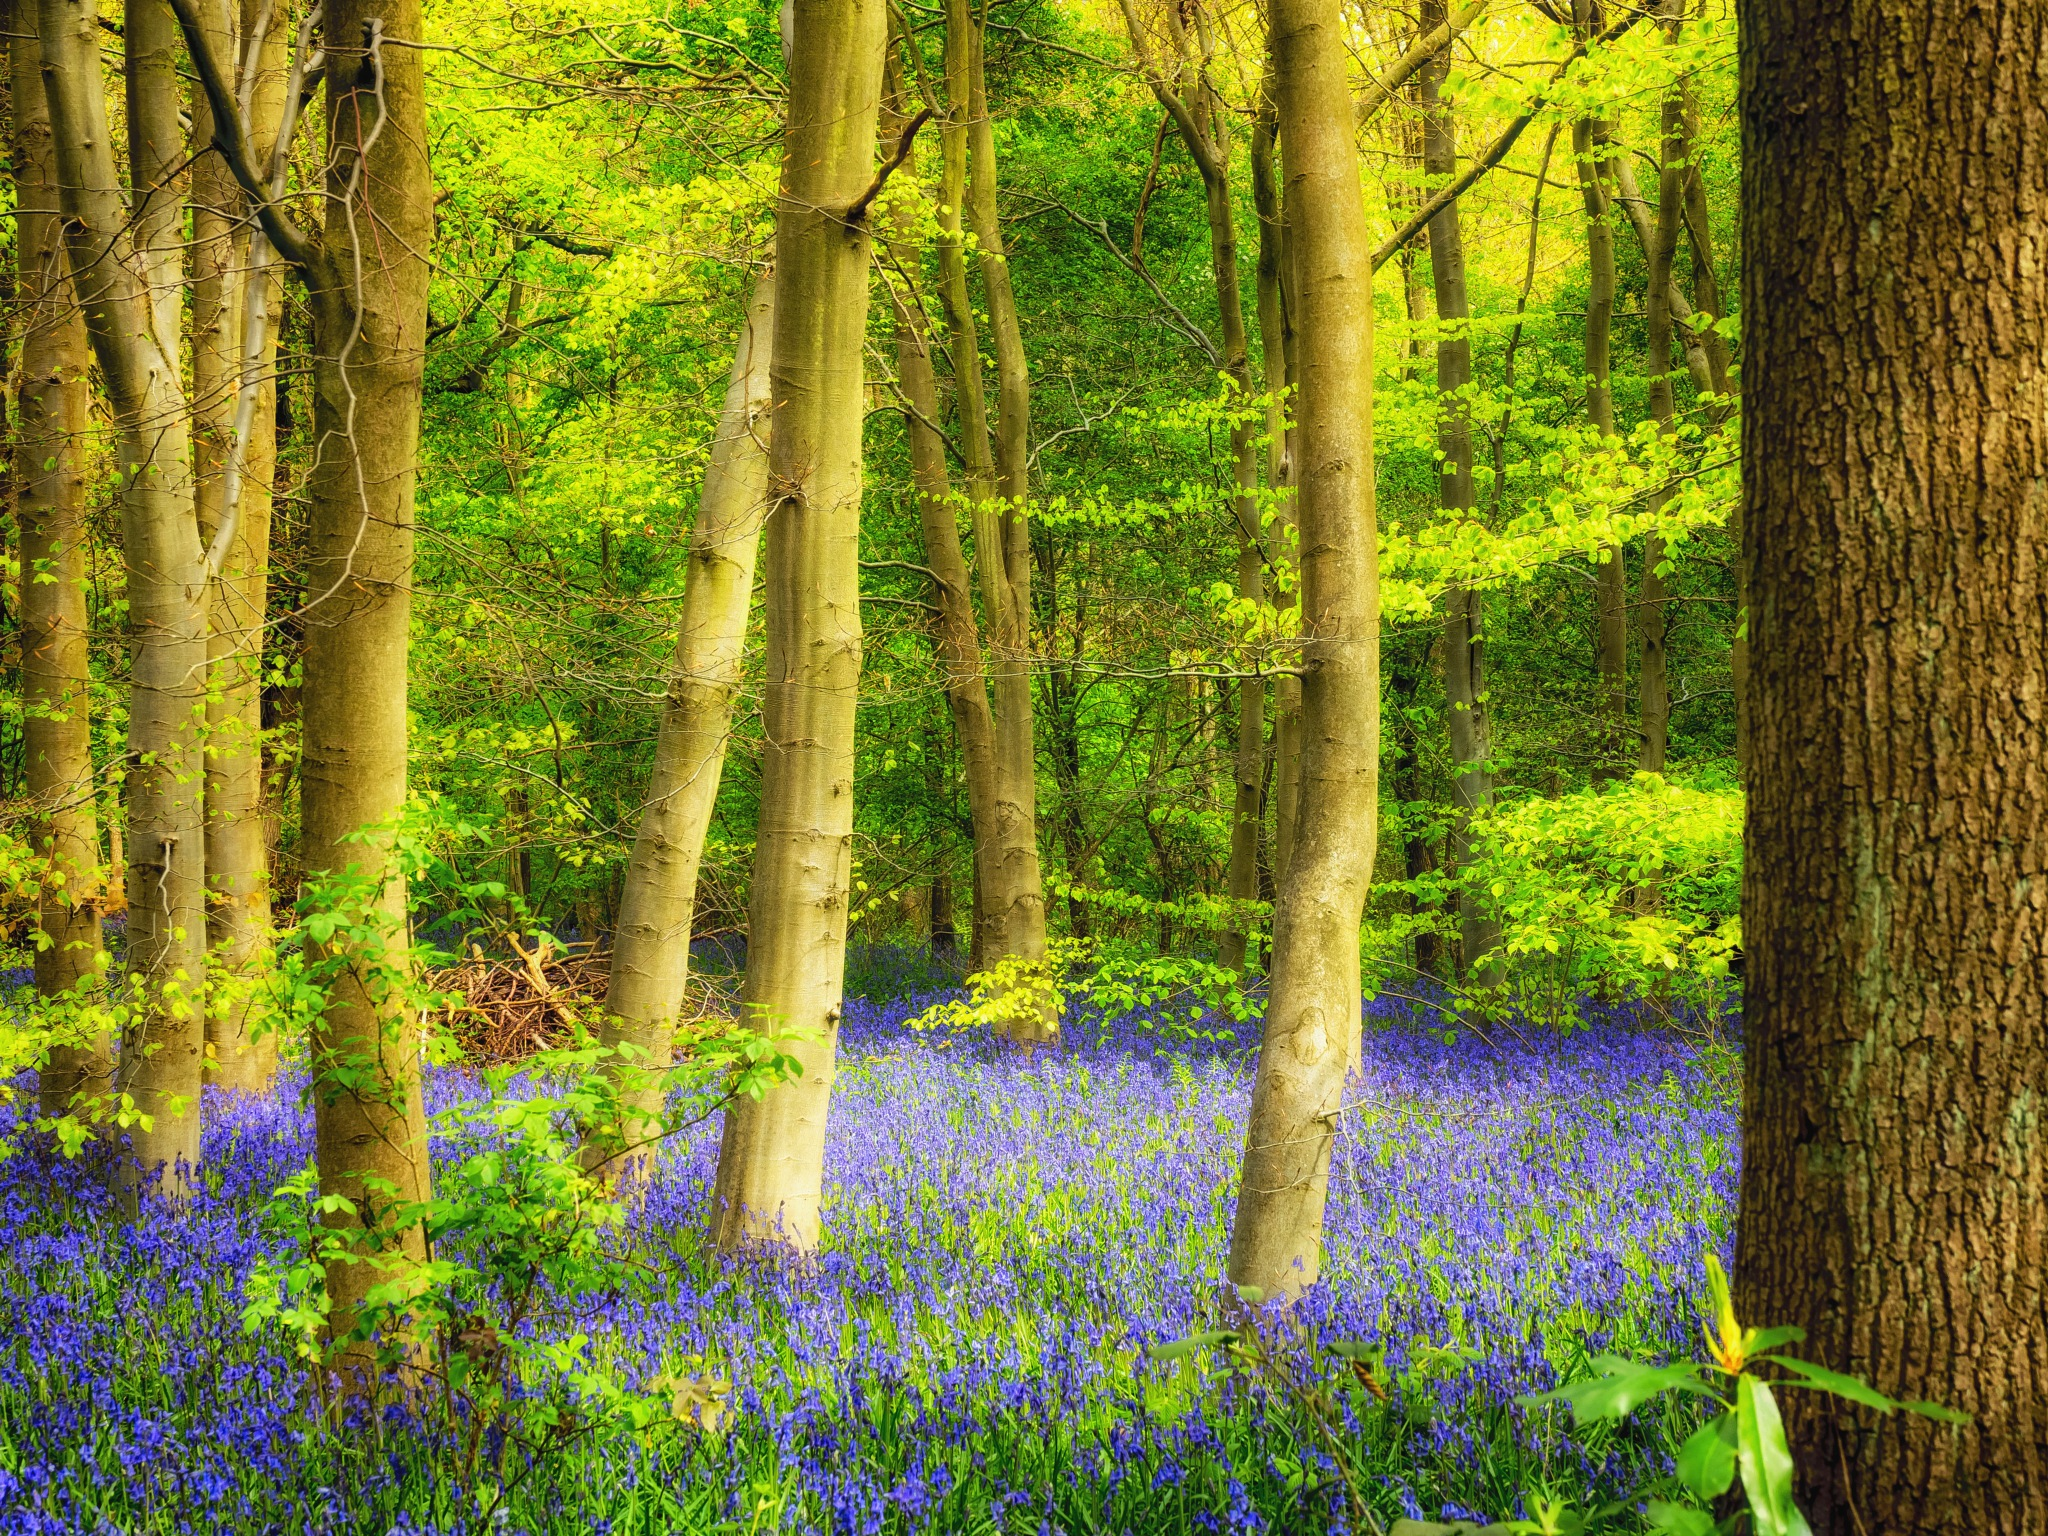 Bluebell Woods by Sarah Walters